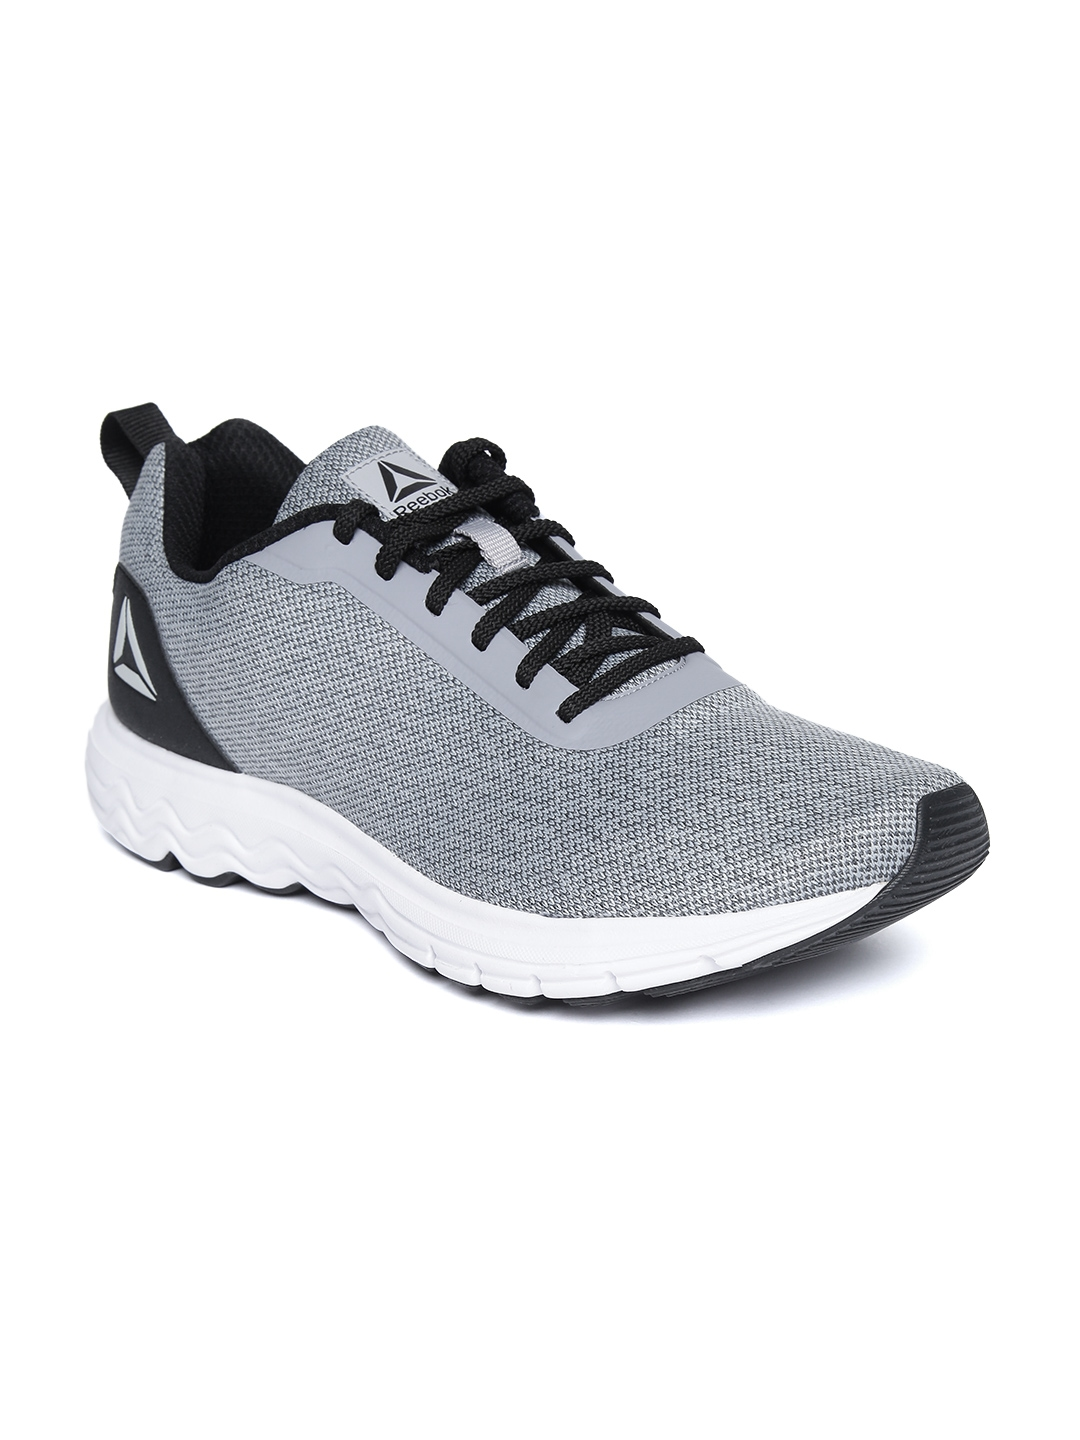 0d2ce16c9899a1 Buy Reebok Men Grey   Black Avid Runner LP Shoes - Sports Shoes for ...